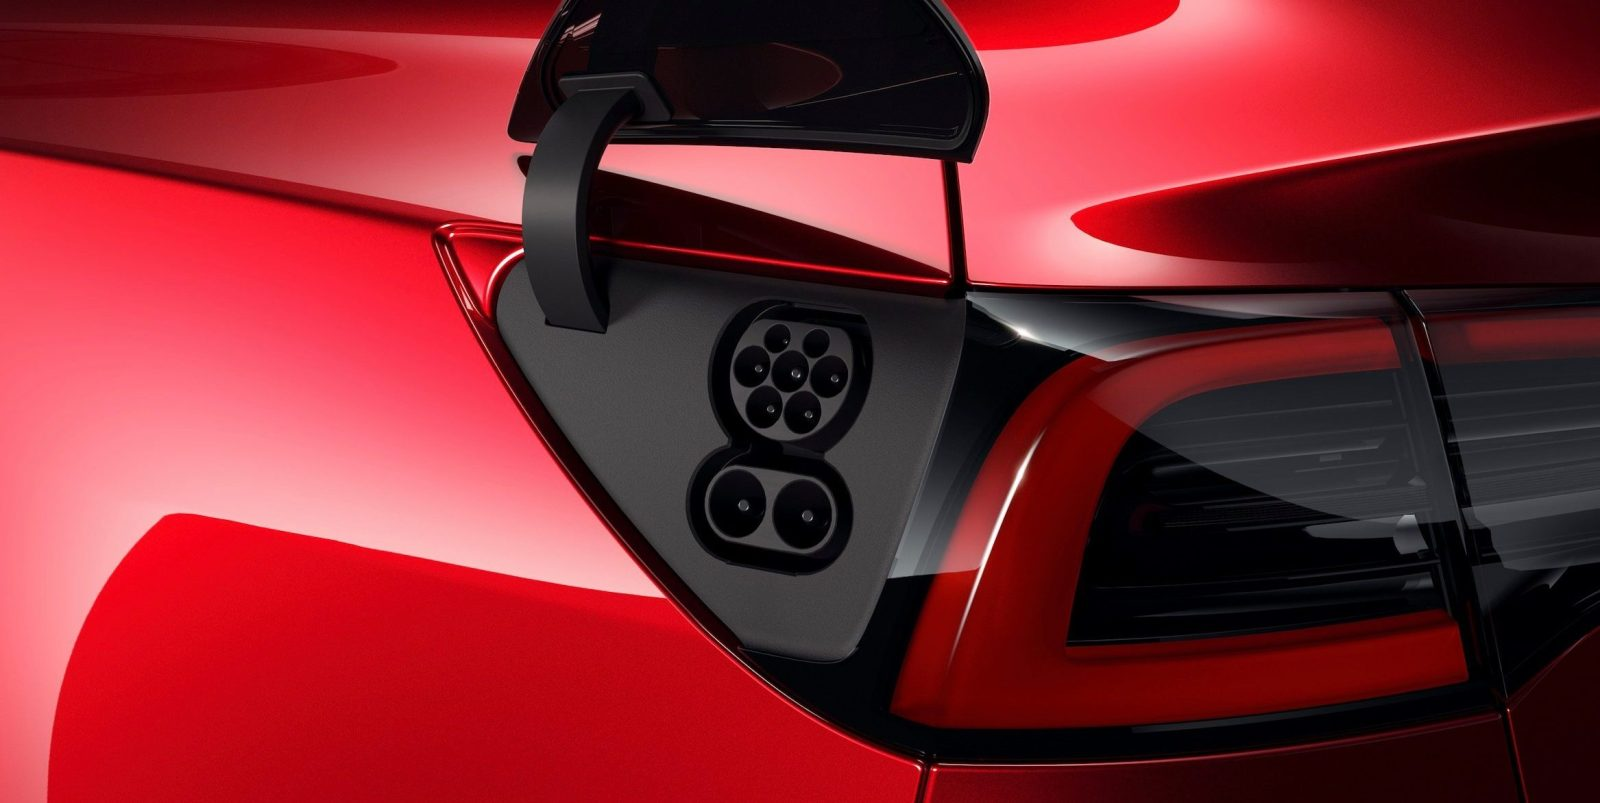 Tesla Confirms Model 3 Is Getting A Ccs Plug In Europe Adapter Coming For Odel X